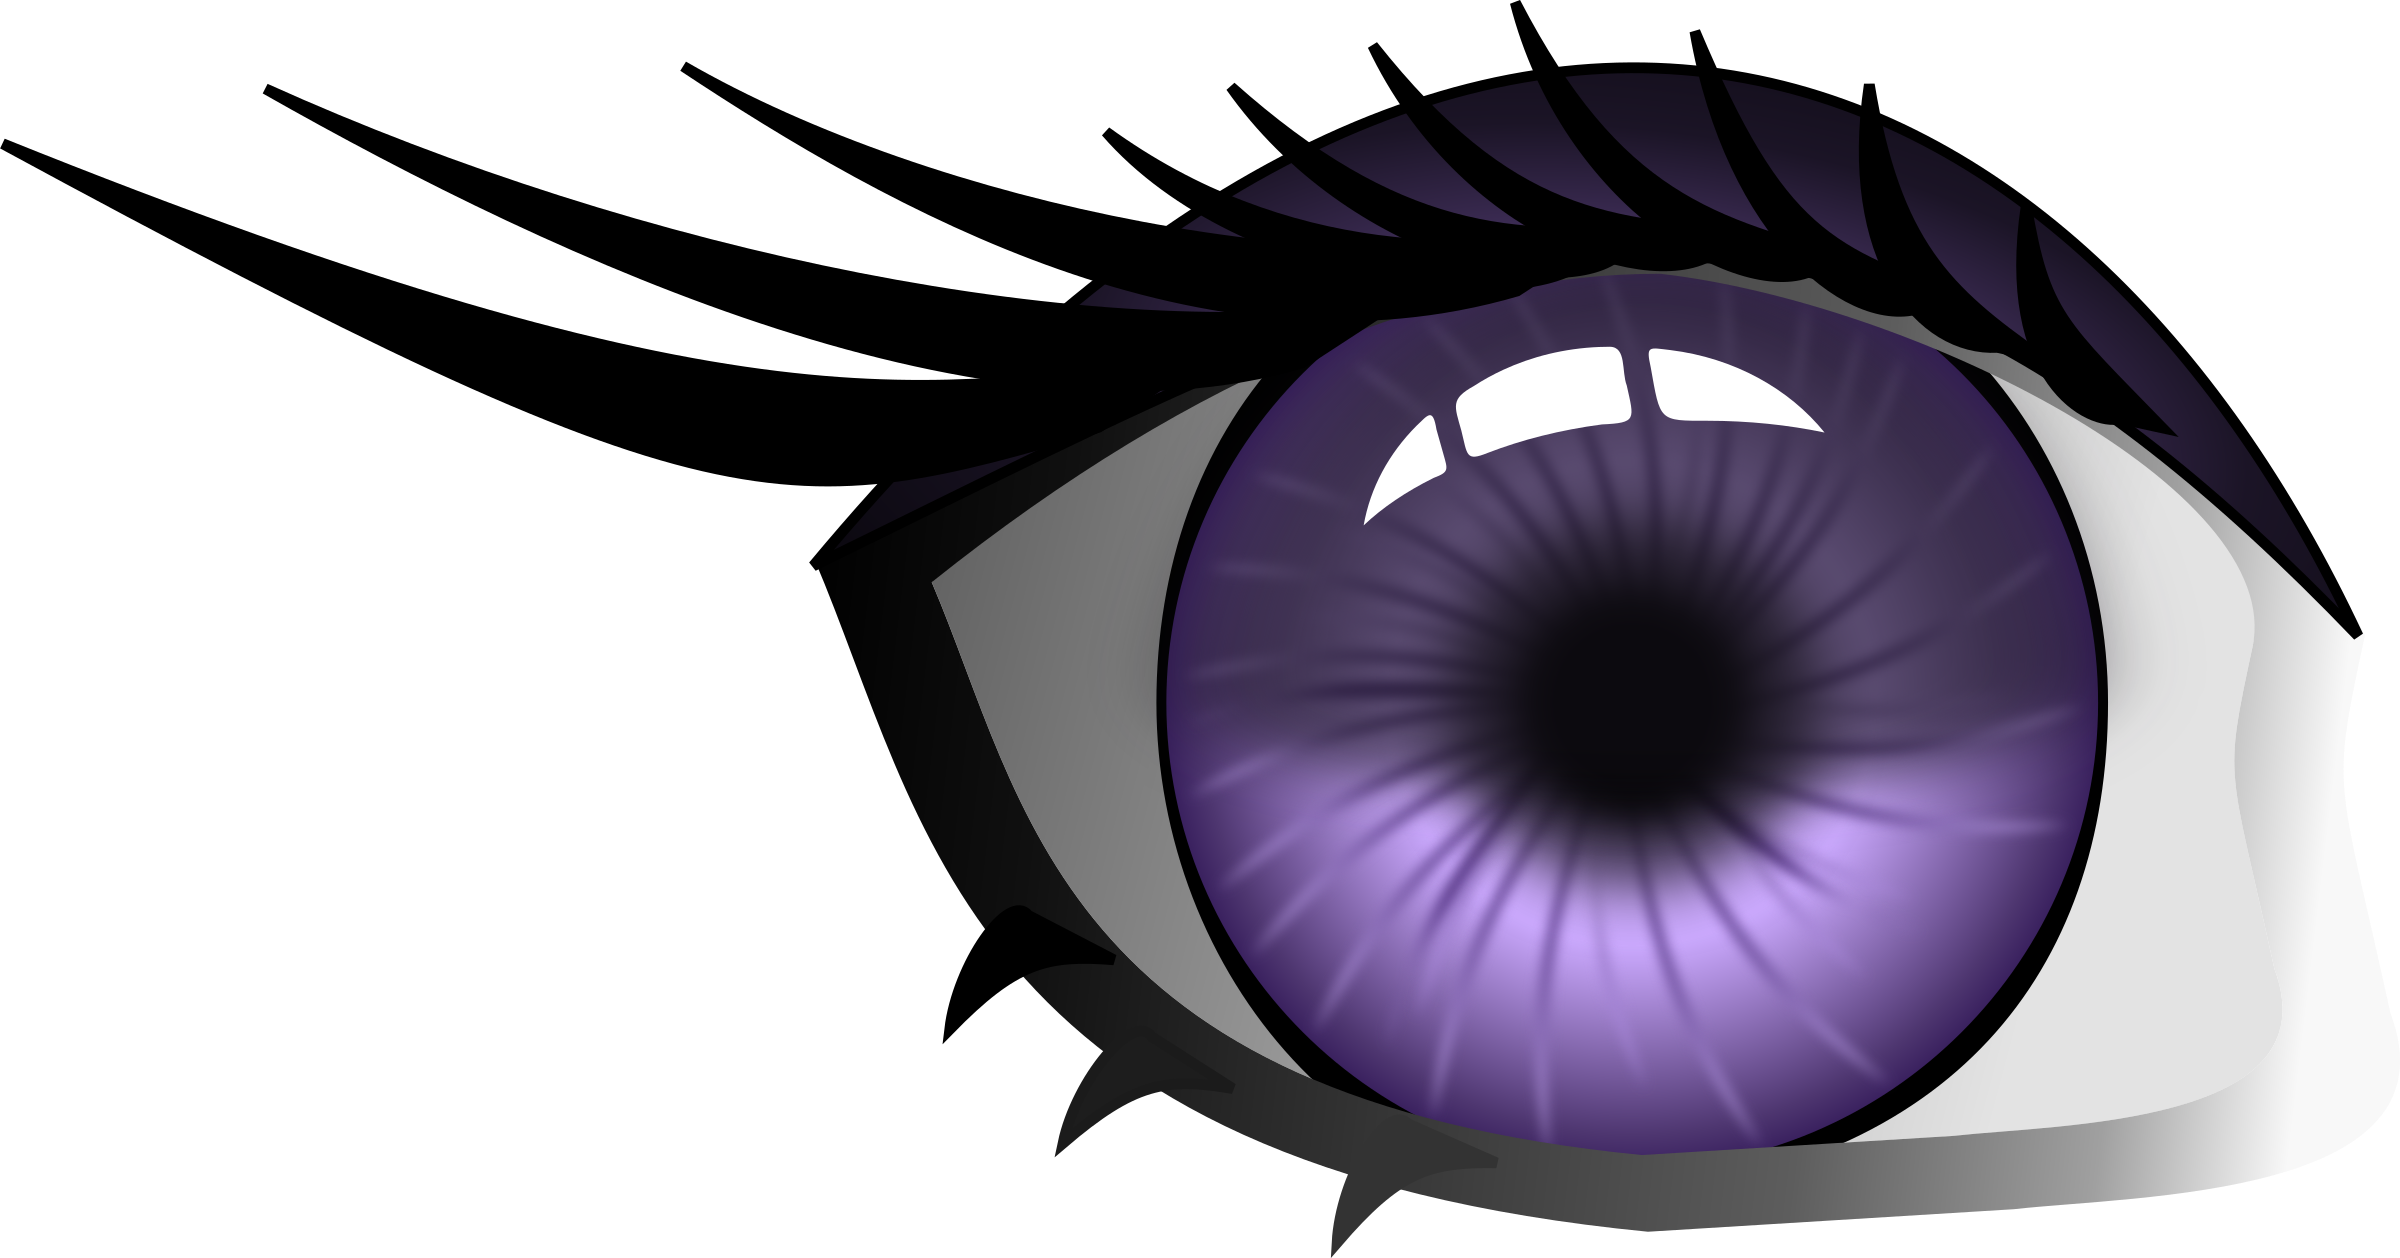 Eyelash clipart purple eye. Big image png